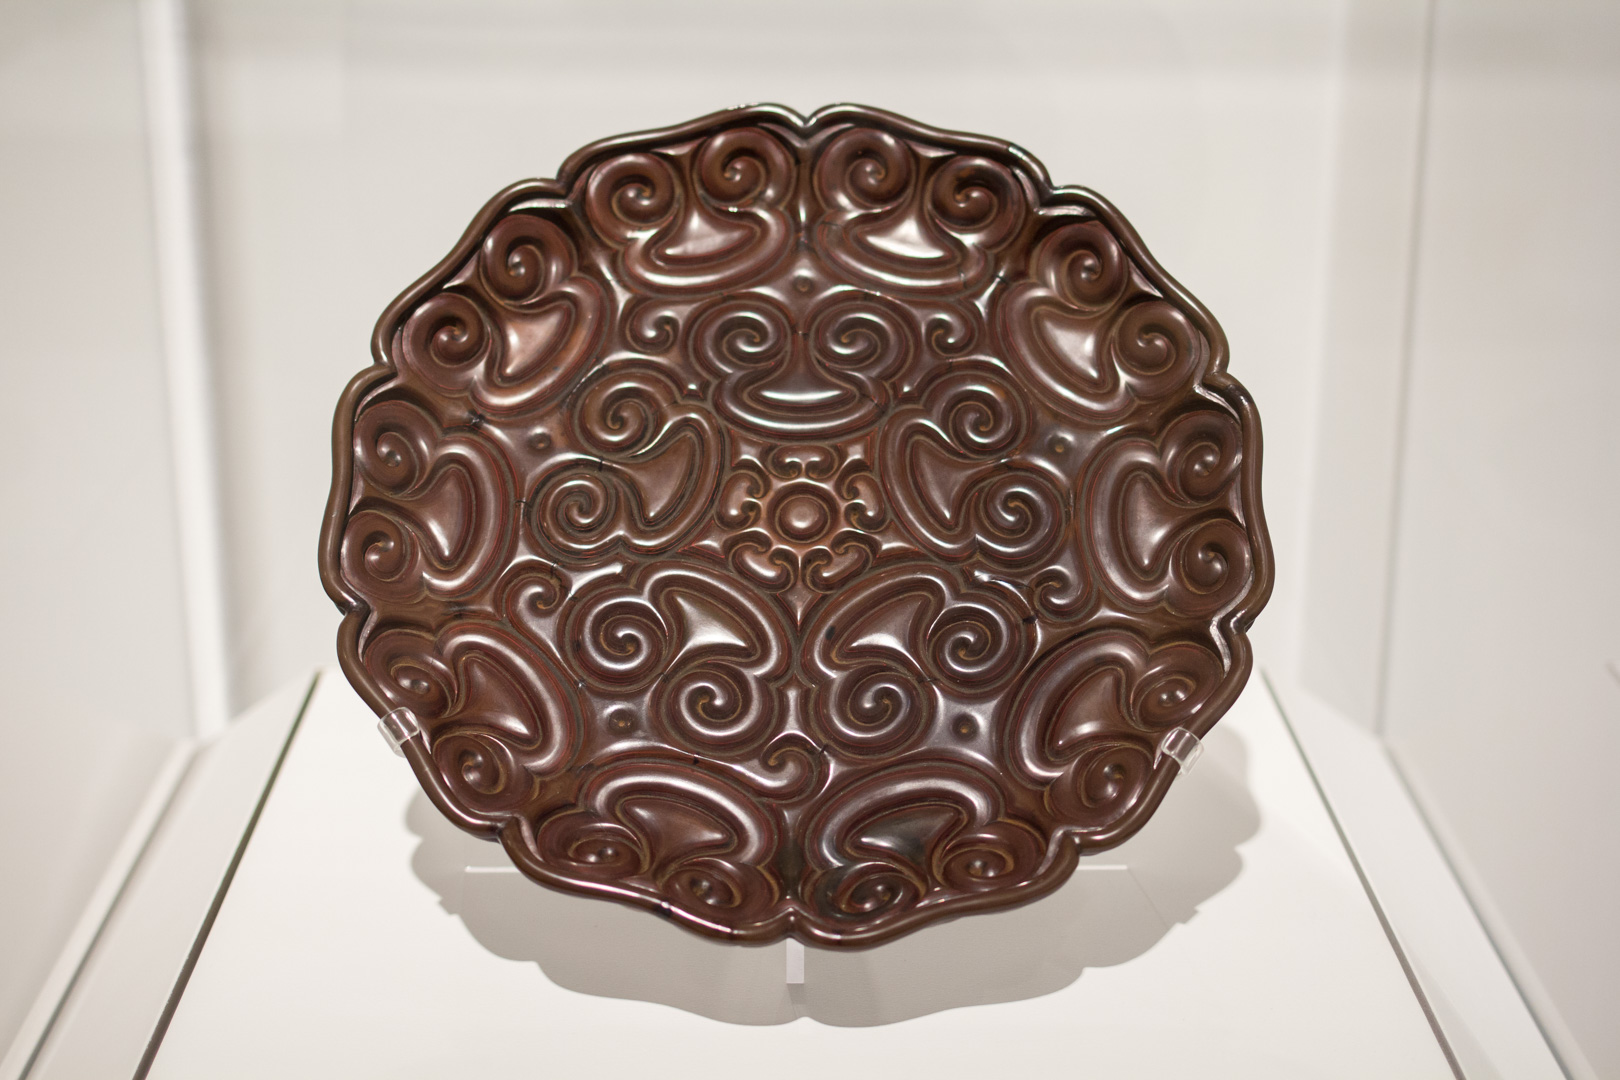 Object of the Week: Large Plate